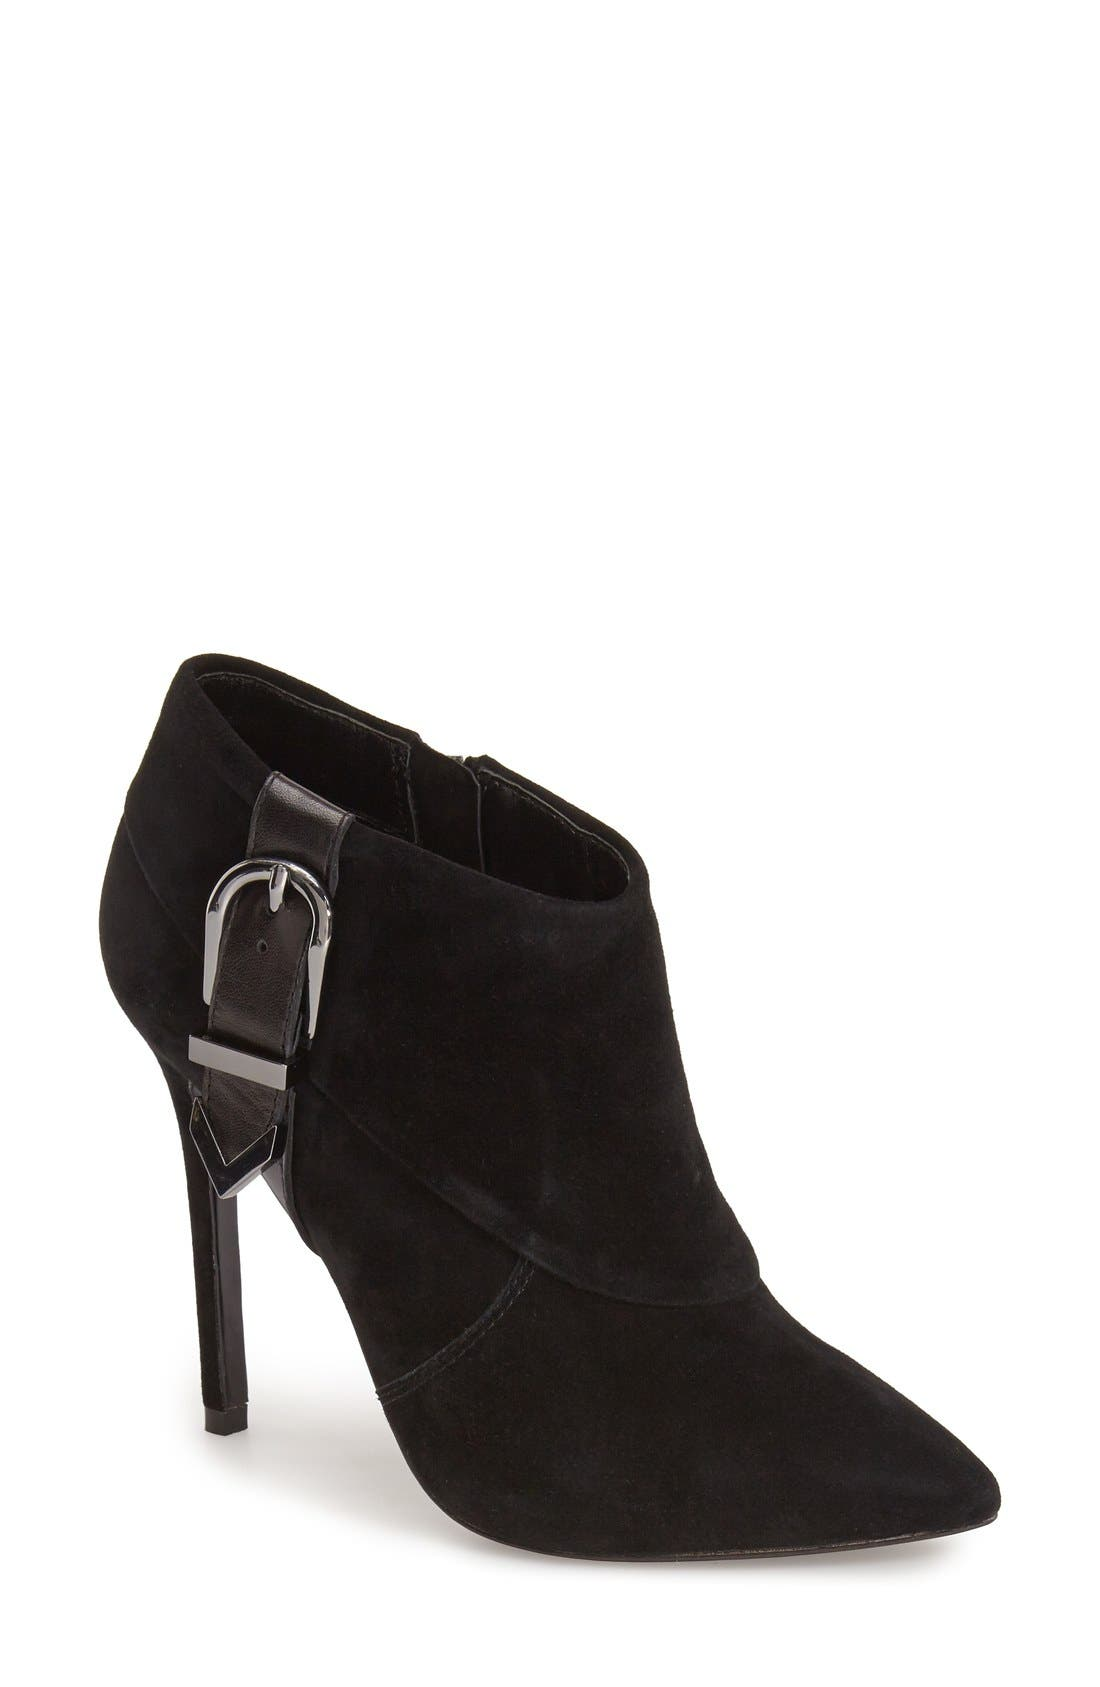 Alternate Image 1 Selected - Charles David 'Valle' Pointy Toe Bootie (Women)